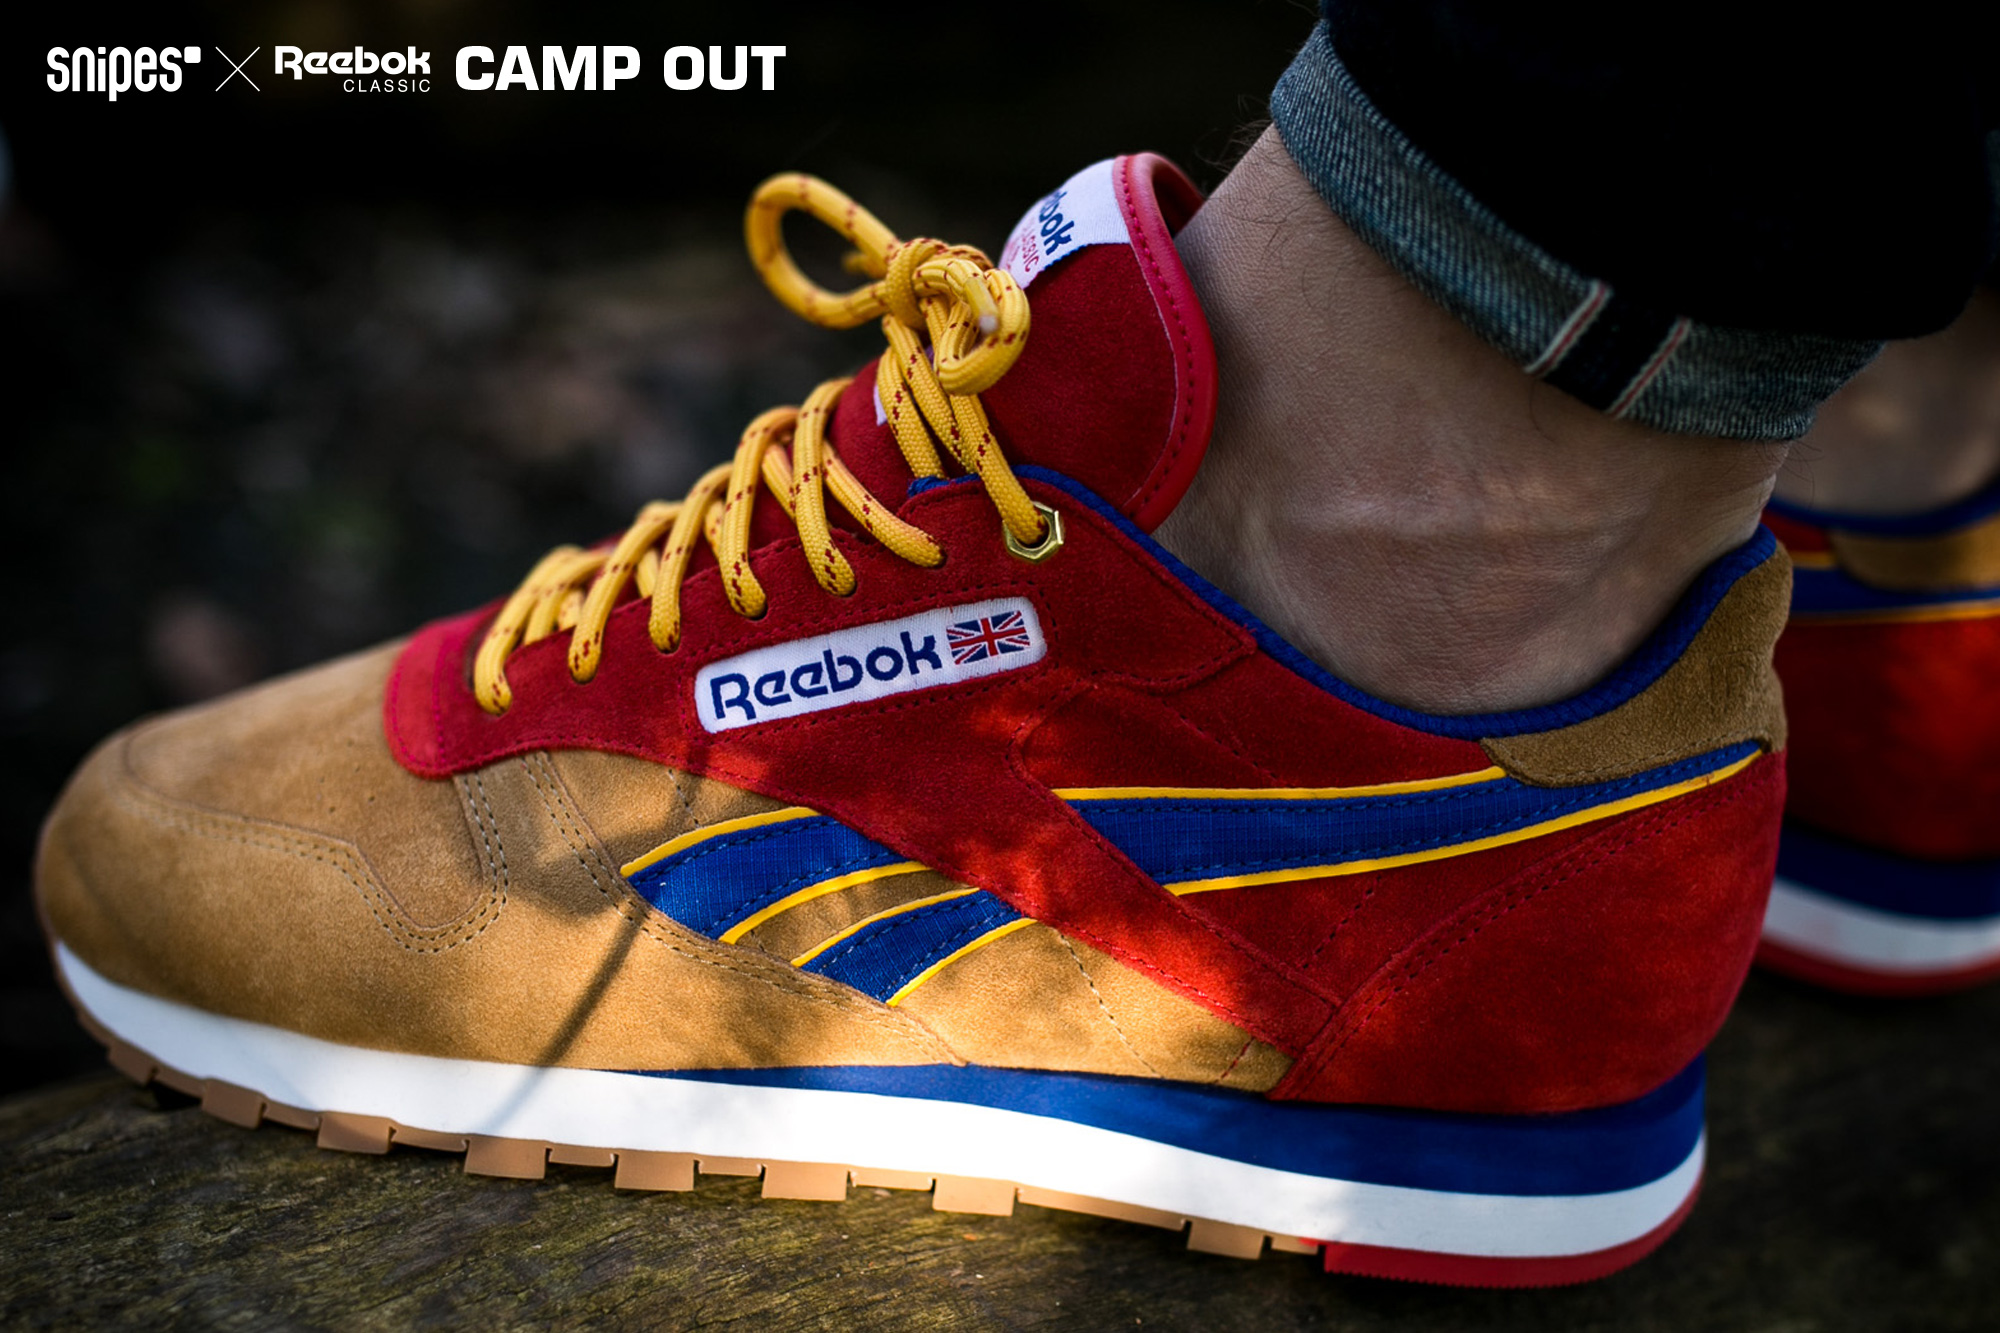 SNIPES x Reebok Camp Out 2